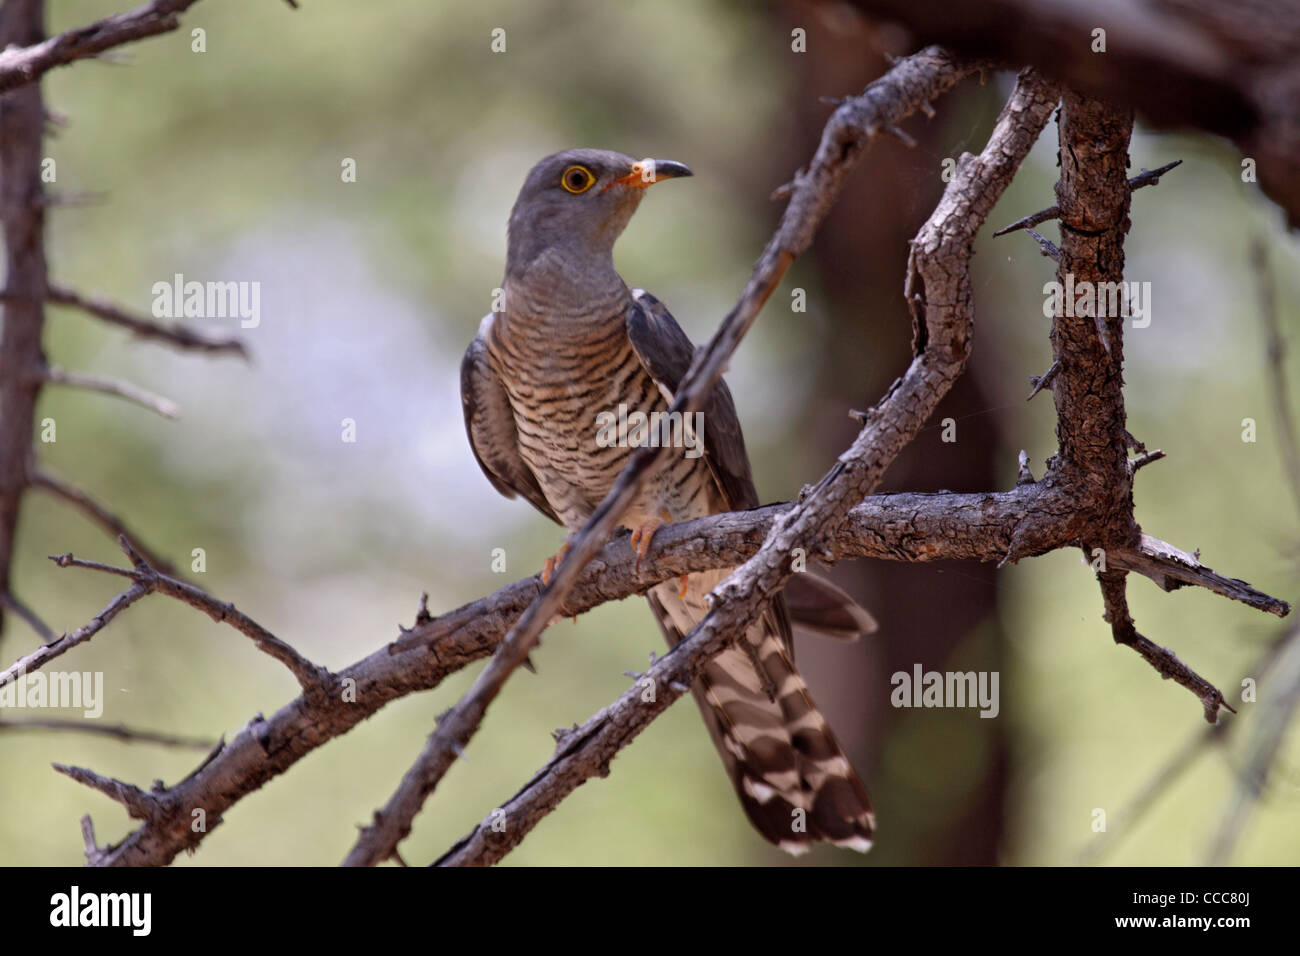 African cuckoo in Namibia - Stock Image